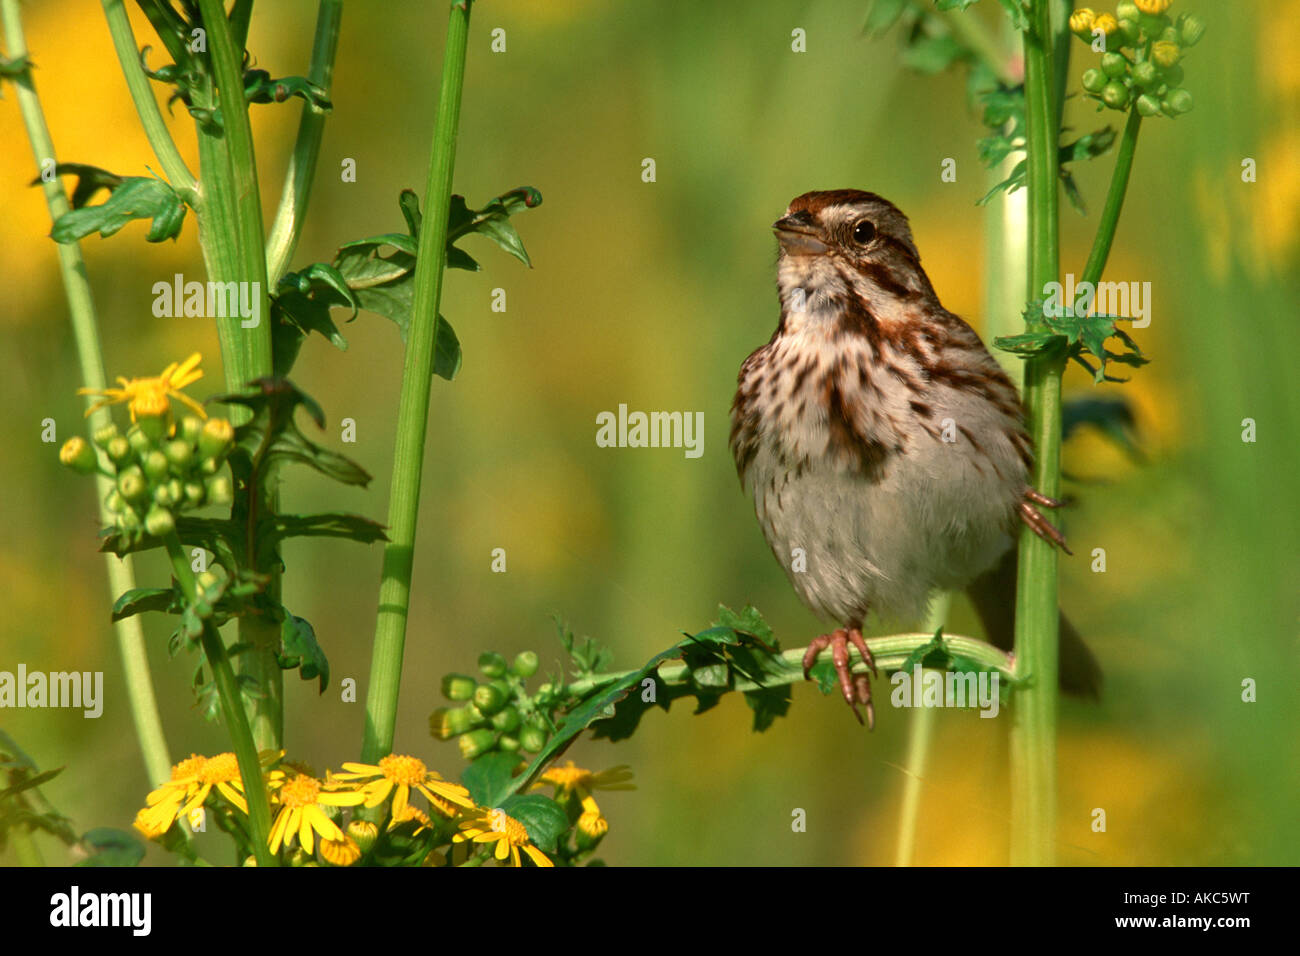 Song Sparrow in Mustard Flowers - Stock Image